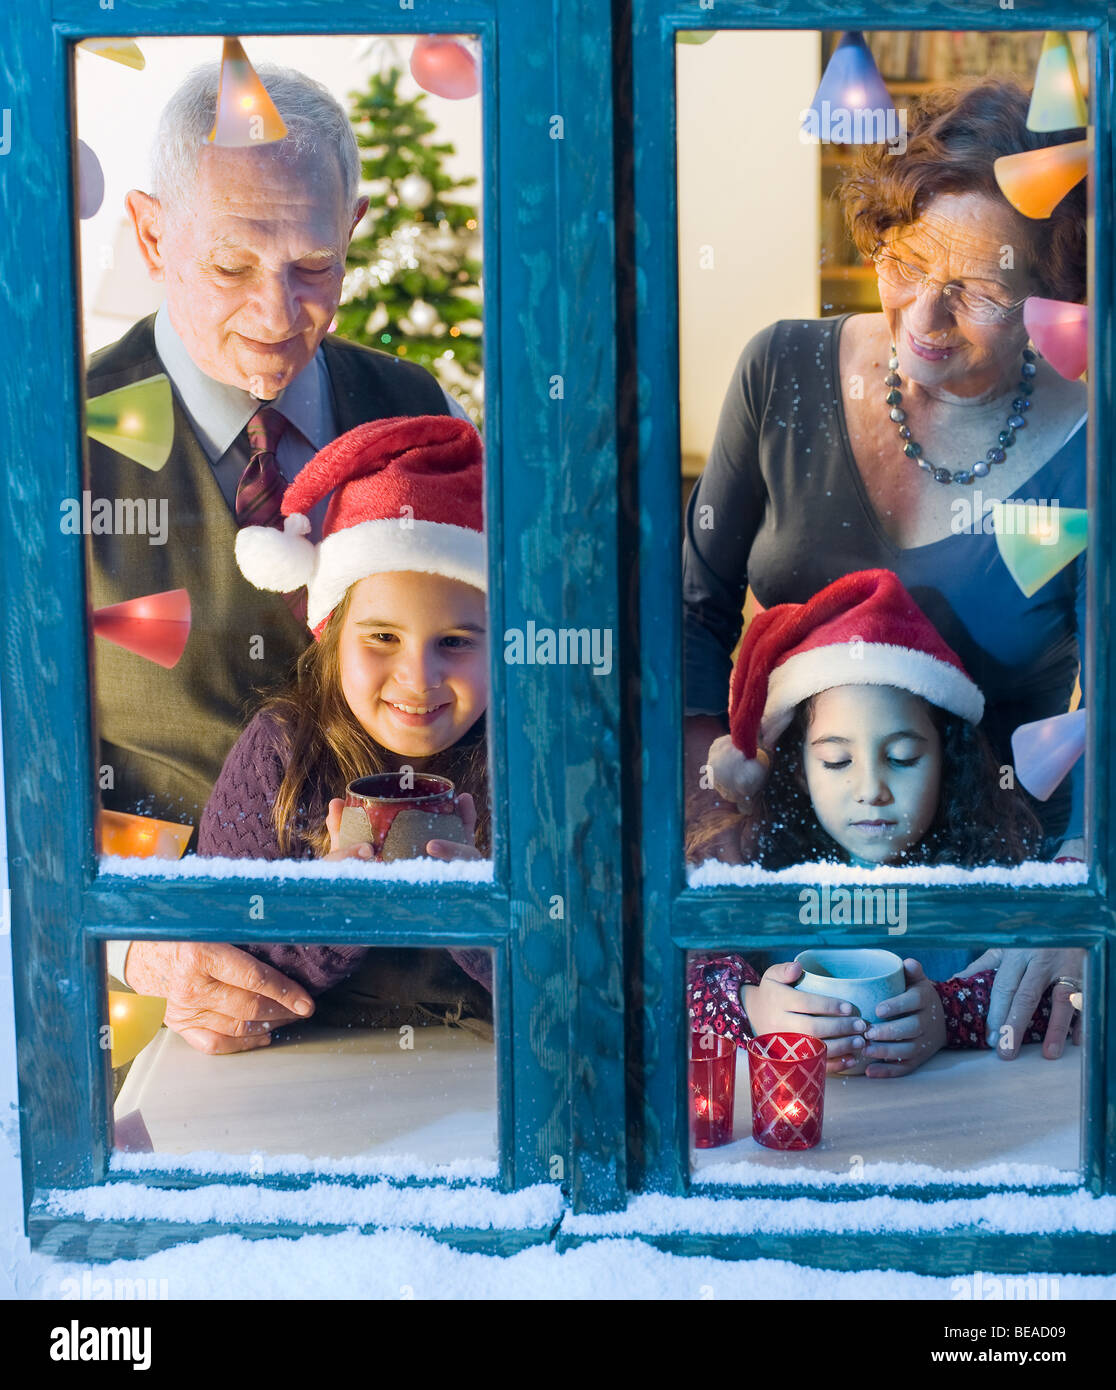 Grandparents and granddaughter at the window on Christmas eve. - Stock Image